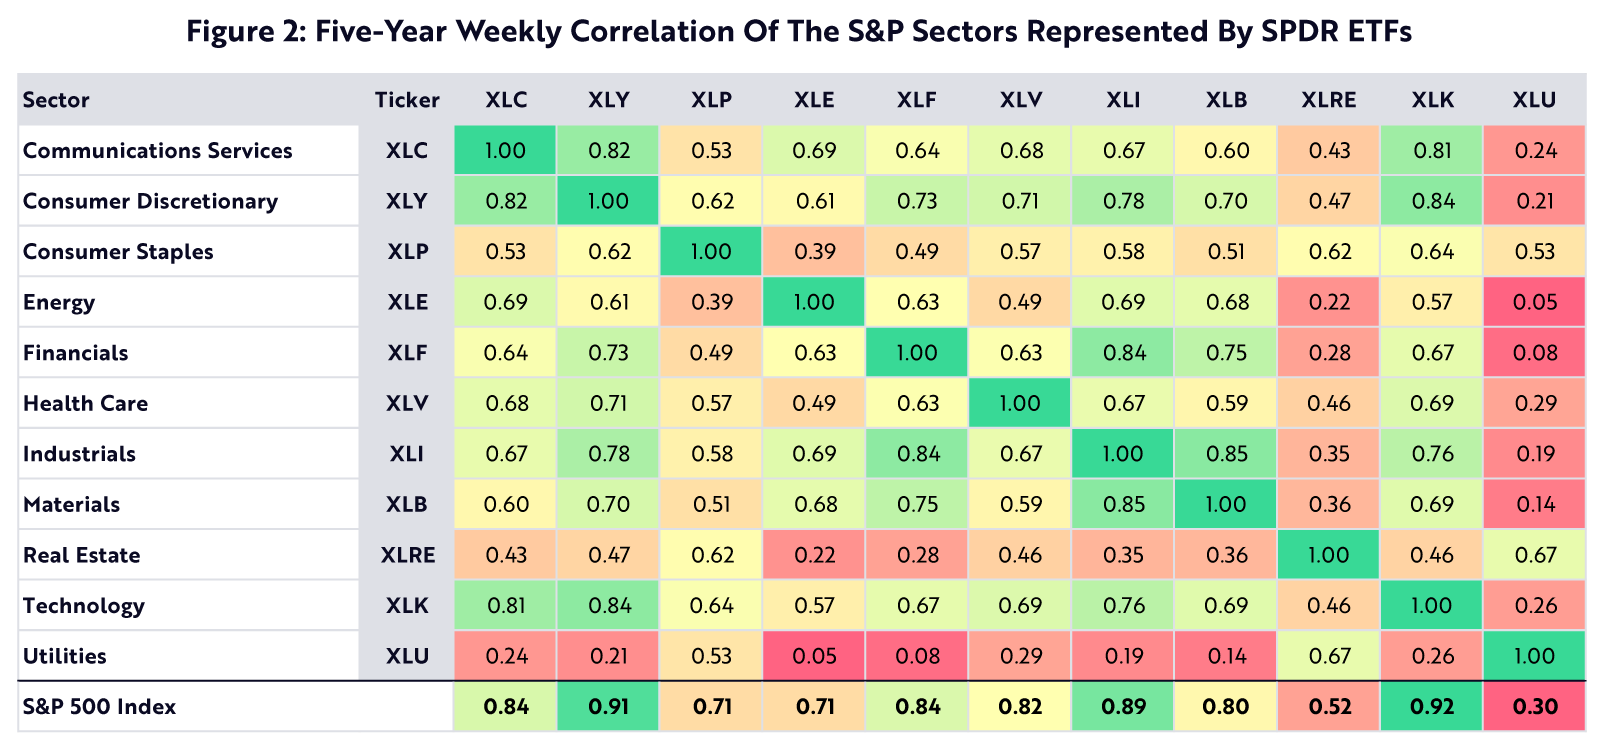 Correlation Of The S&P Sectors, Innovation allocation